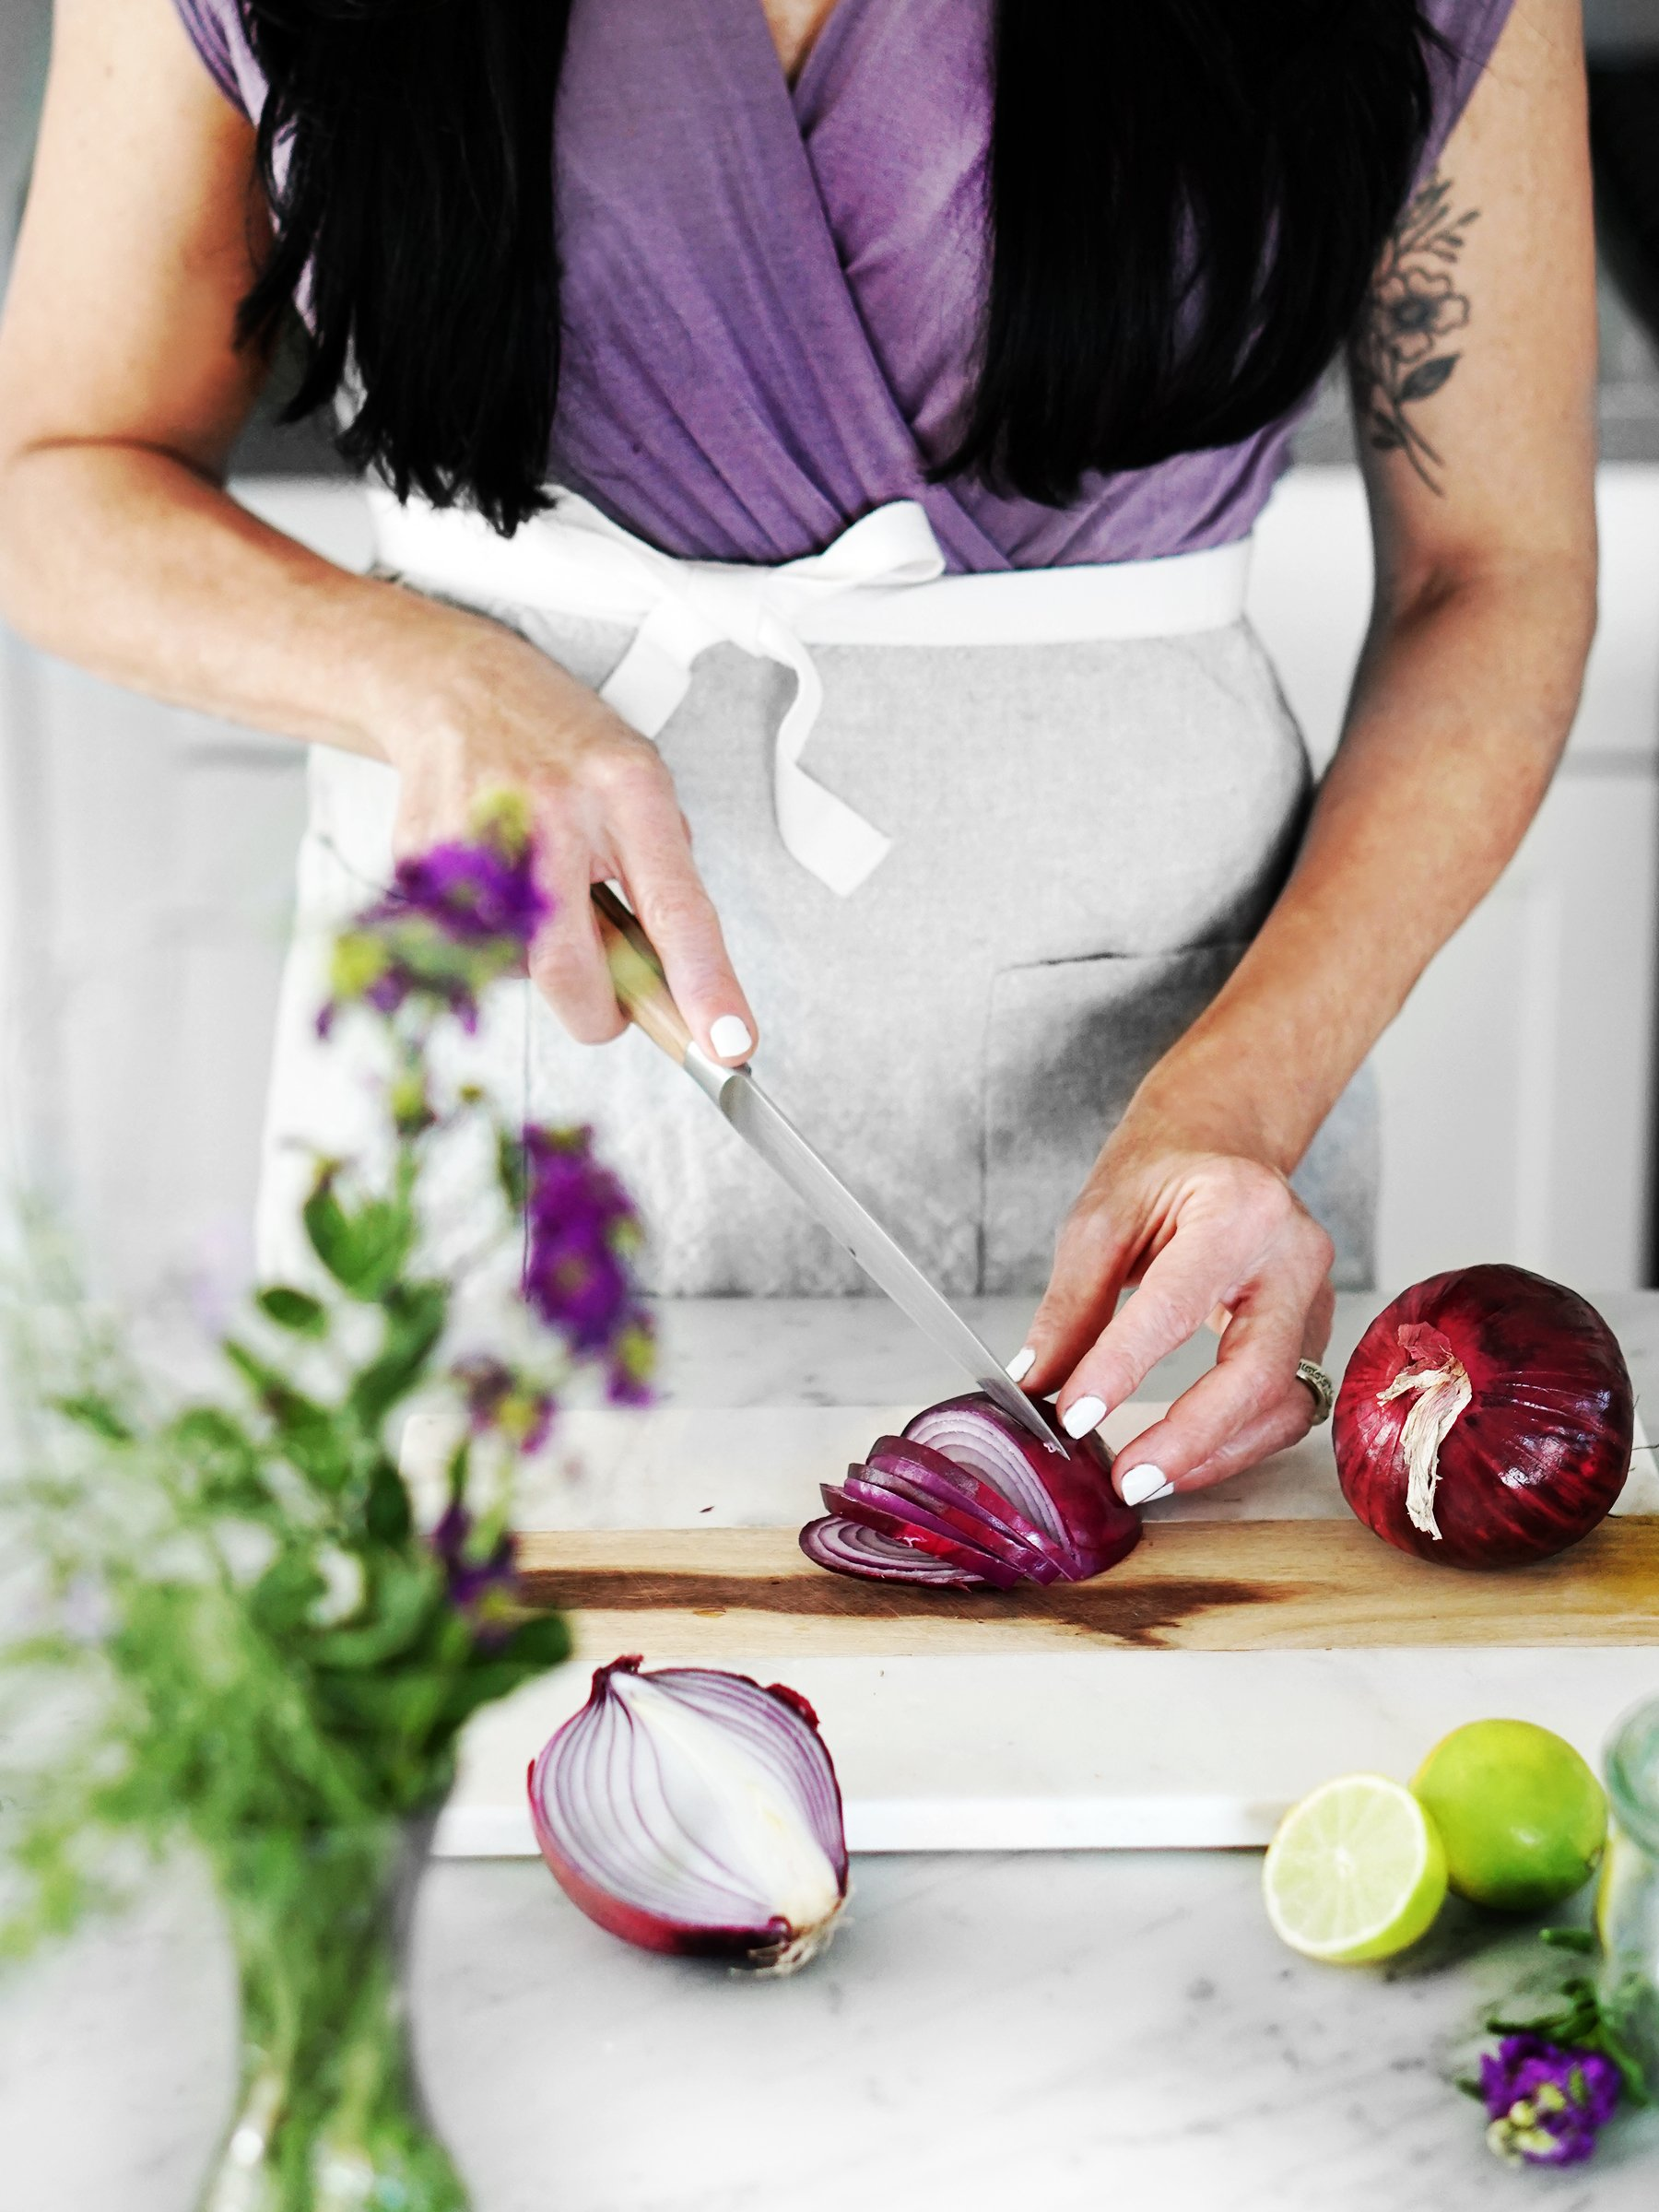 Woman slicing red onions